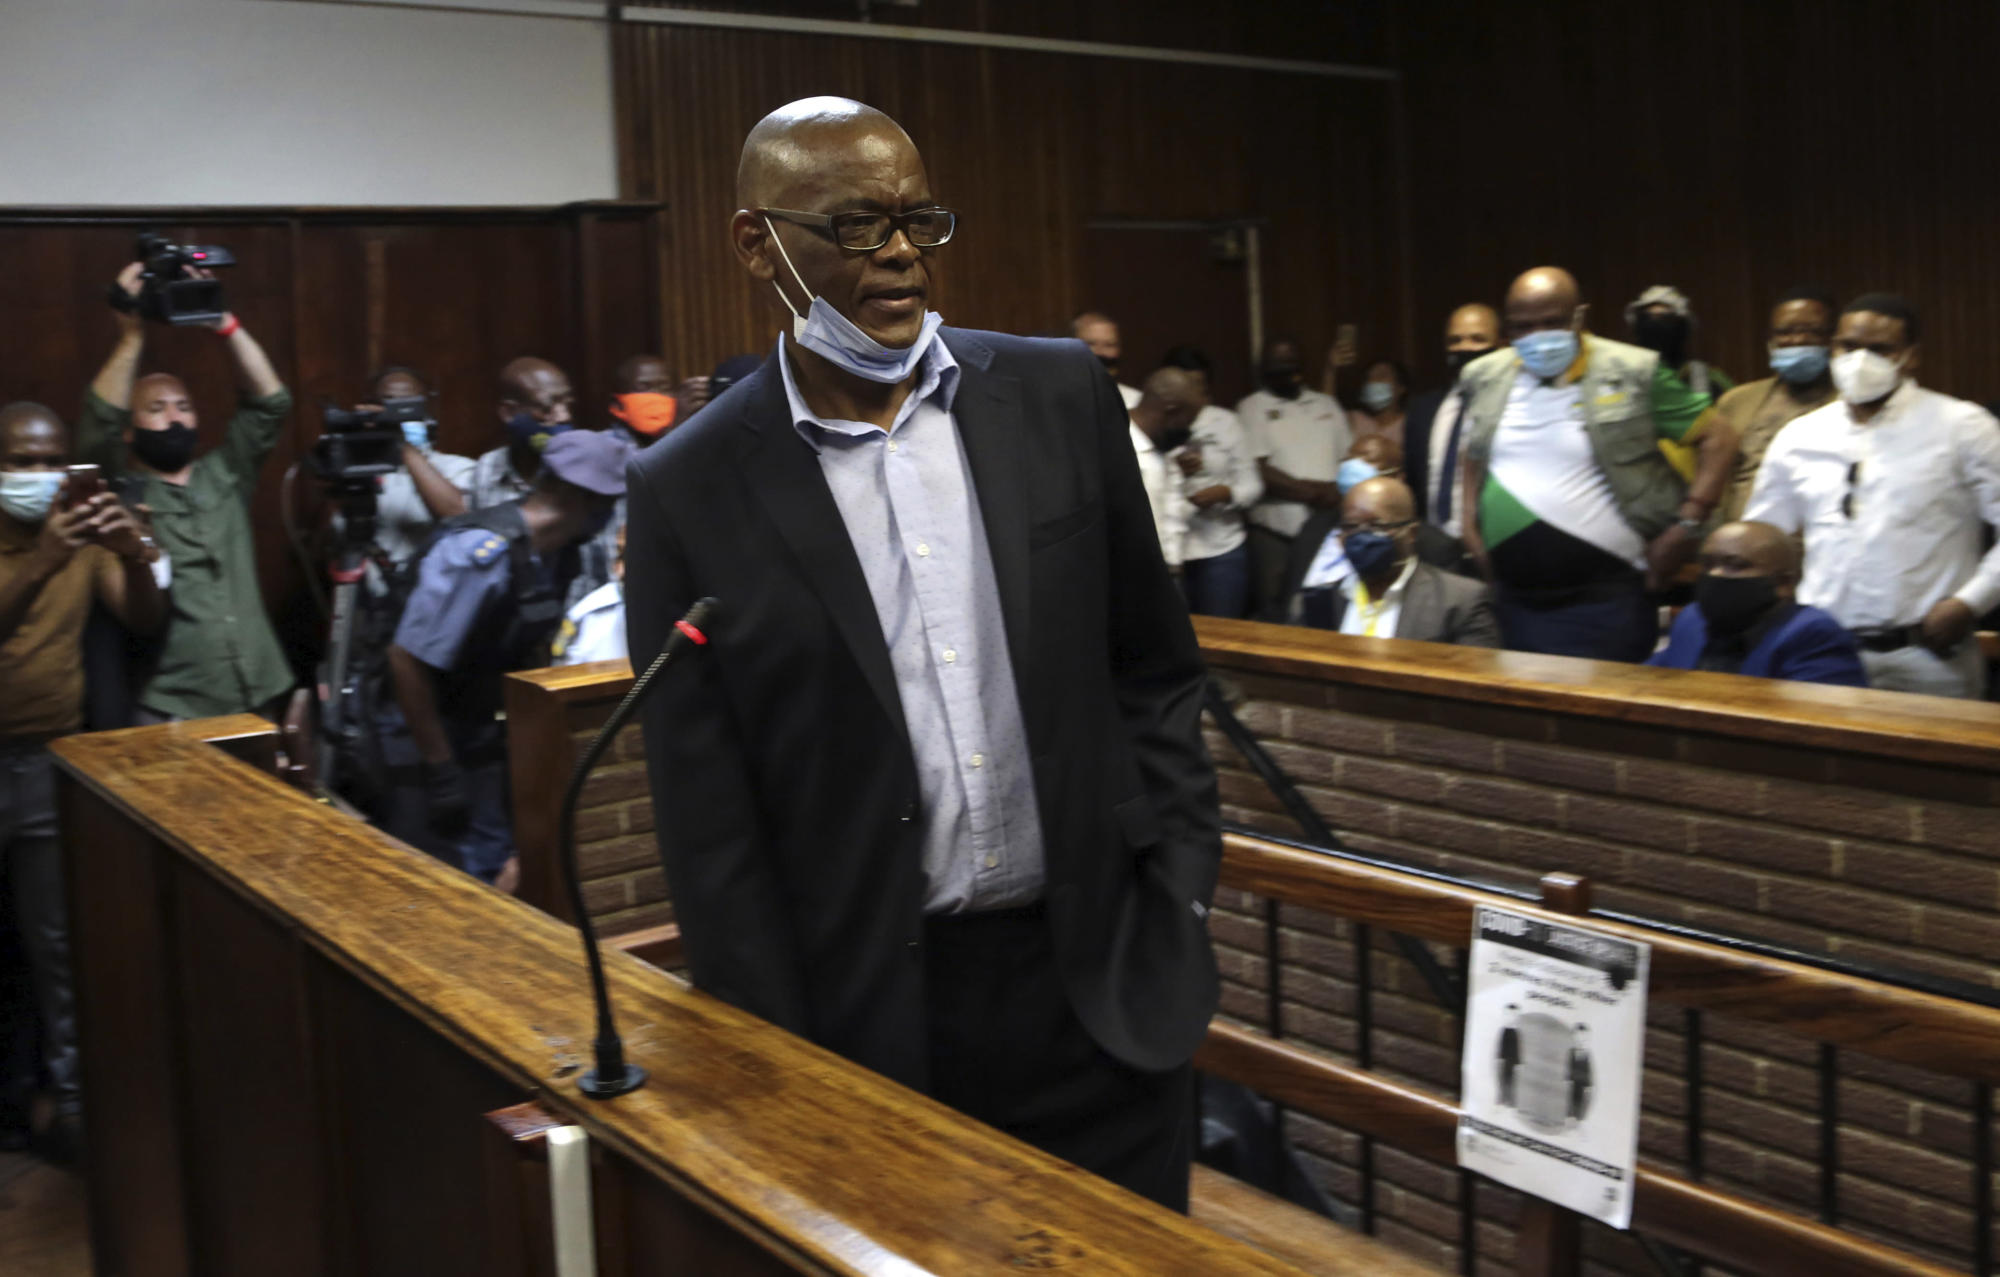 South African ruling party official charged with corruption